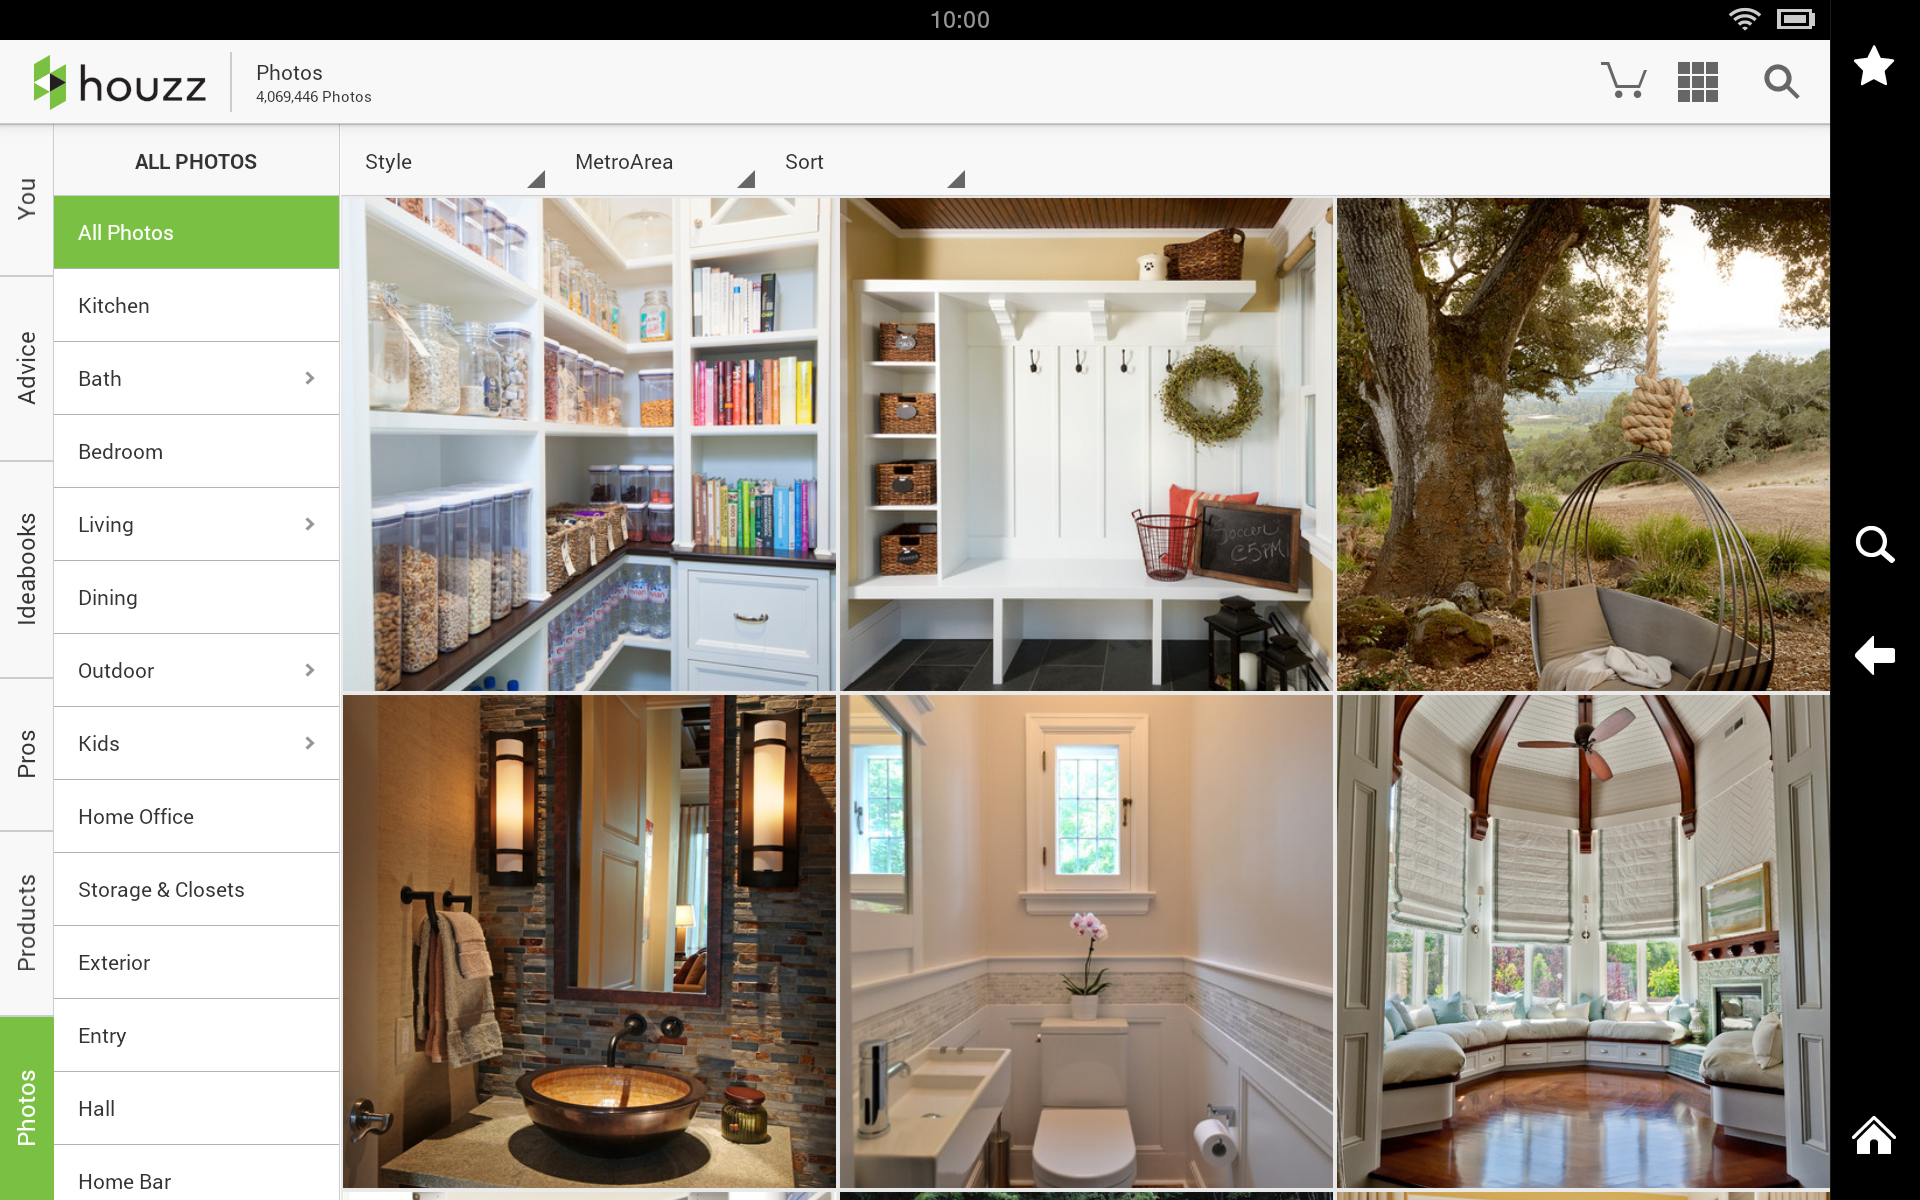 Houzz interior design ideas appstore for android - Houzz interior design ...